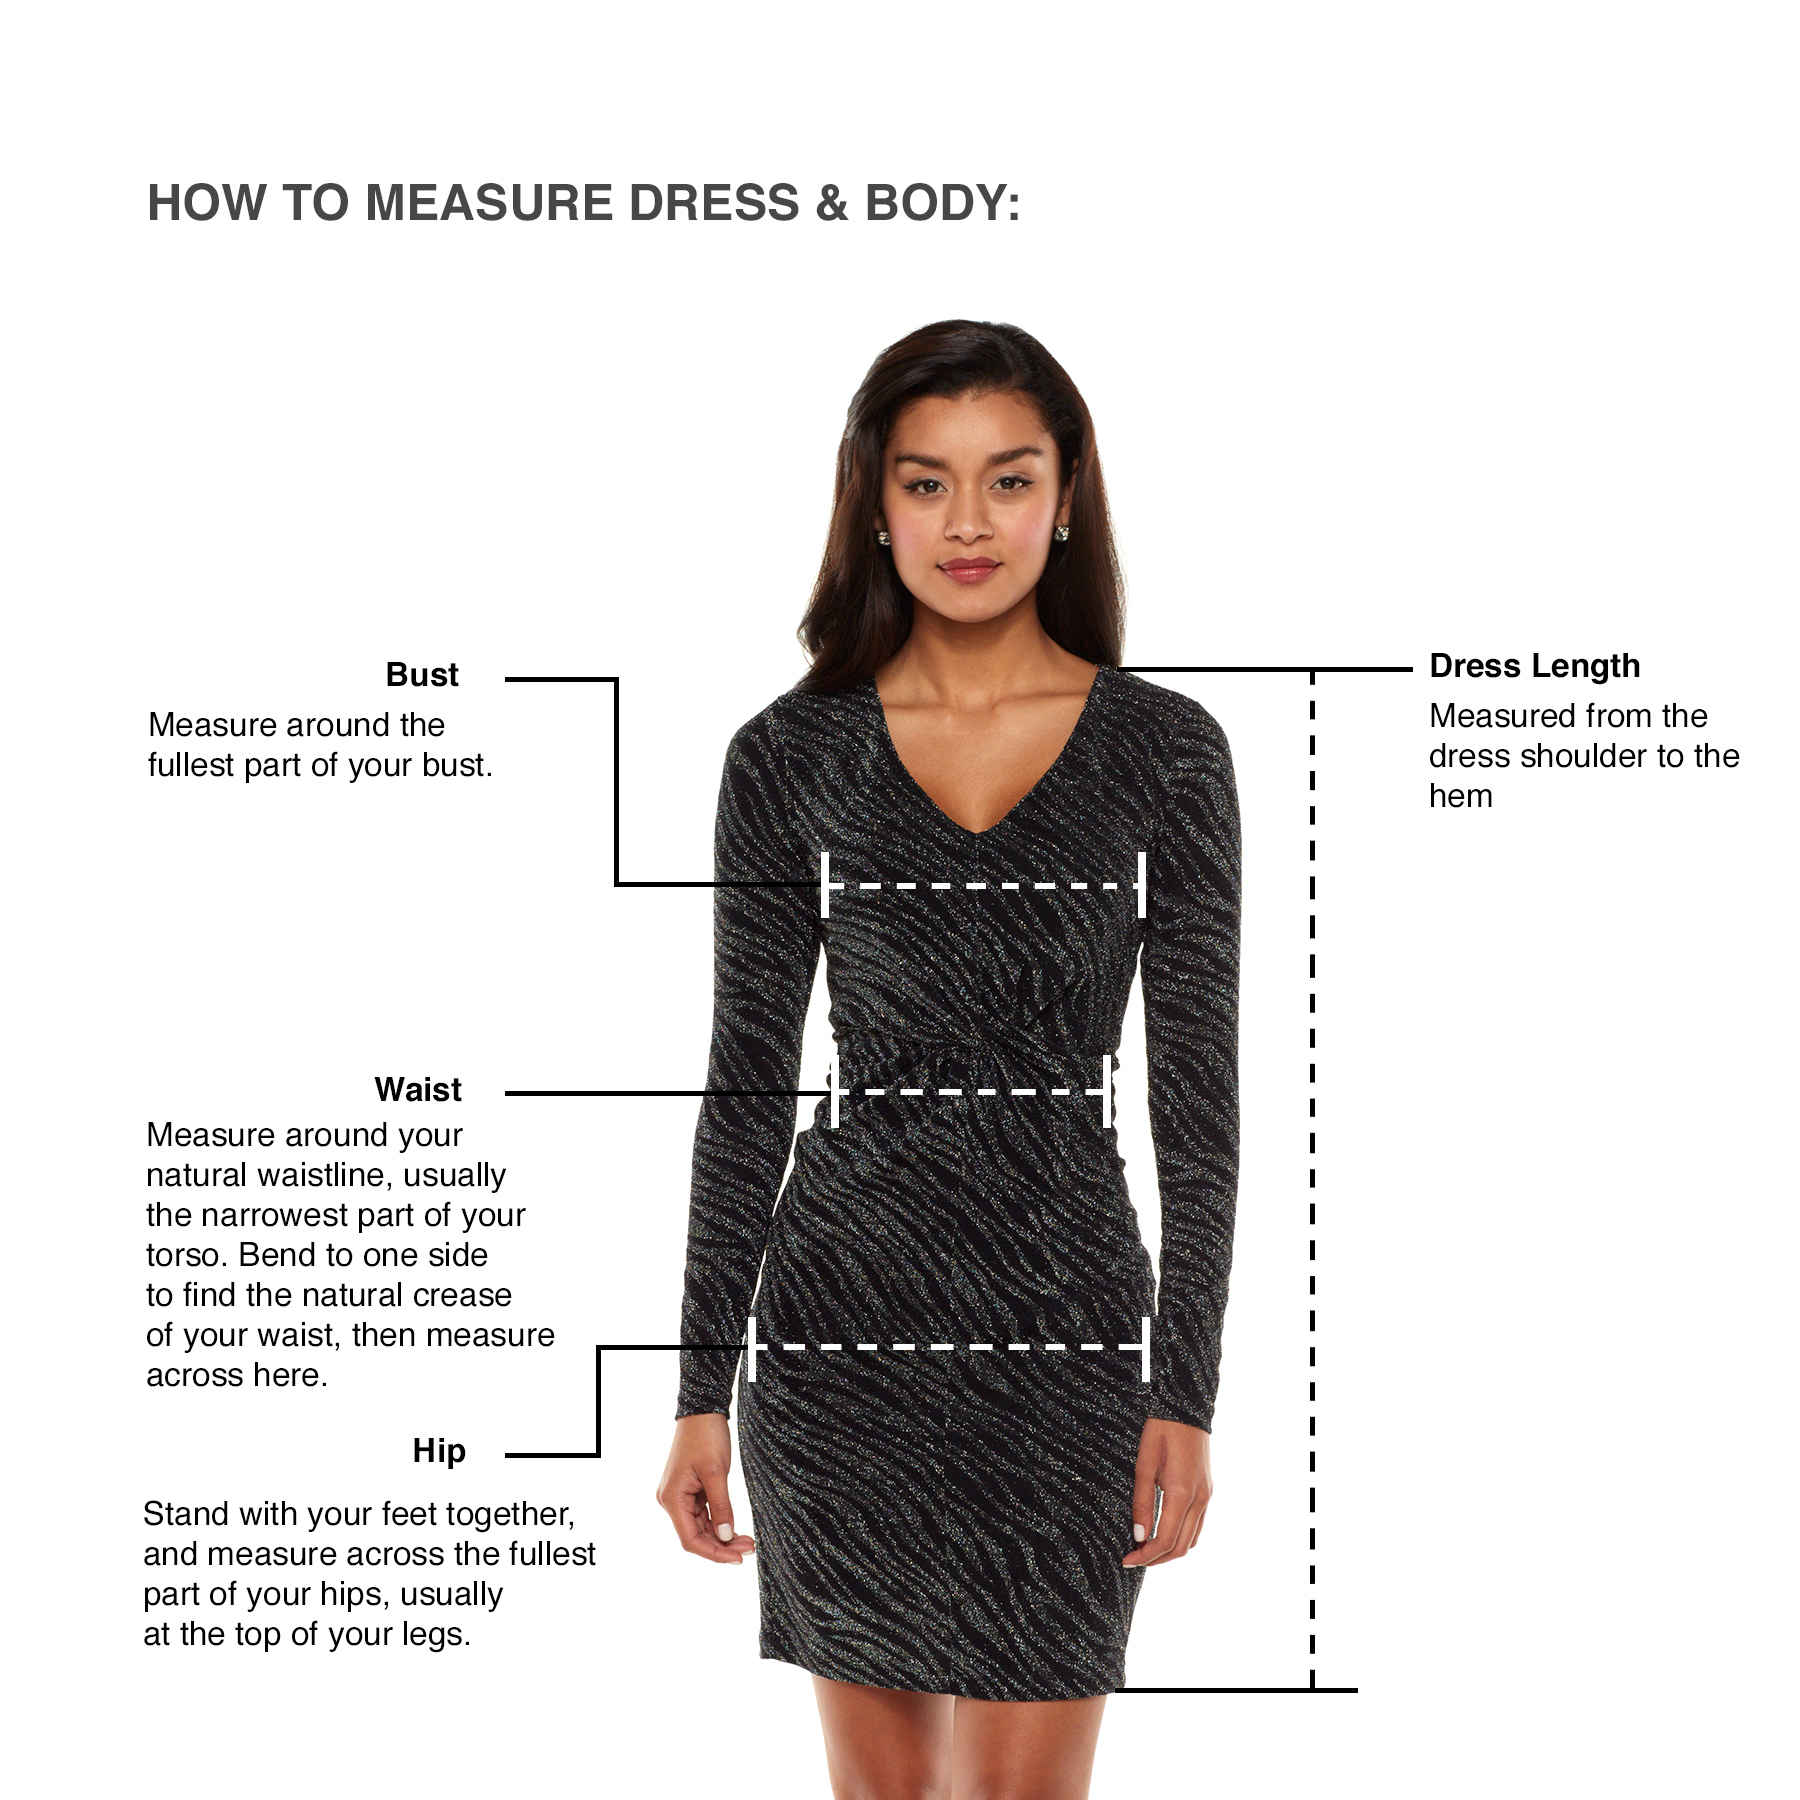 How to measure dress & body—Bust: Measure around the fullest part of your bust.—Dress Measurement: Measured from the dress shoulder to the hem—Waist: Measure around your natural waistline, usually the narrowest part of your torso. Bend to one side to find the natural crease of your waist, then measure across here.—Hip: Stand with your feet together, and measure across the fullest part of your hips, usually at the top of your legs.